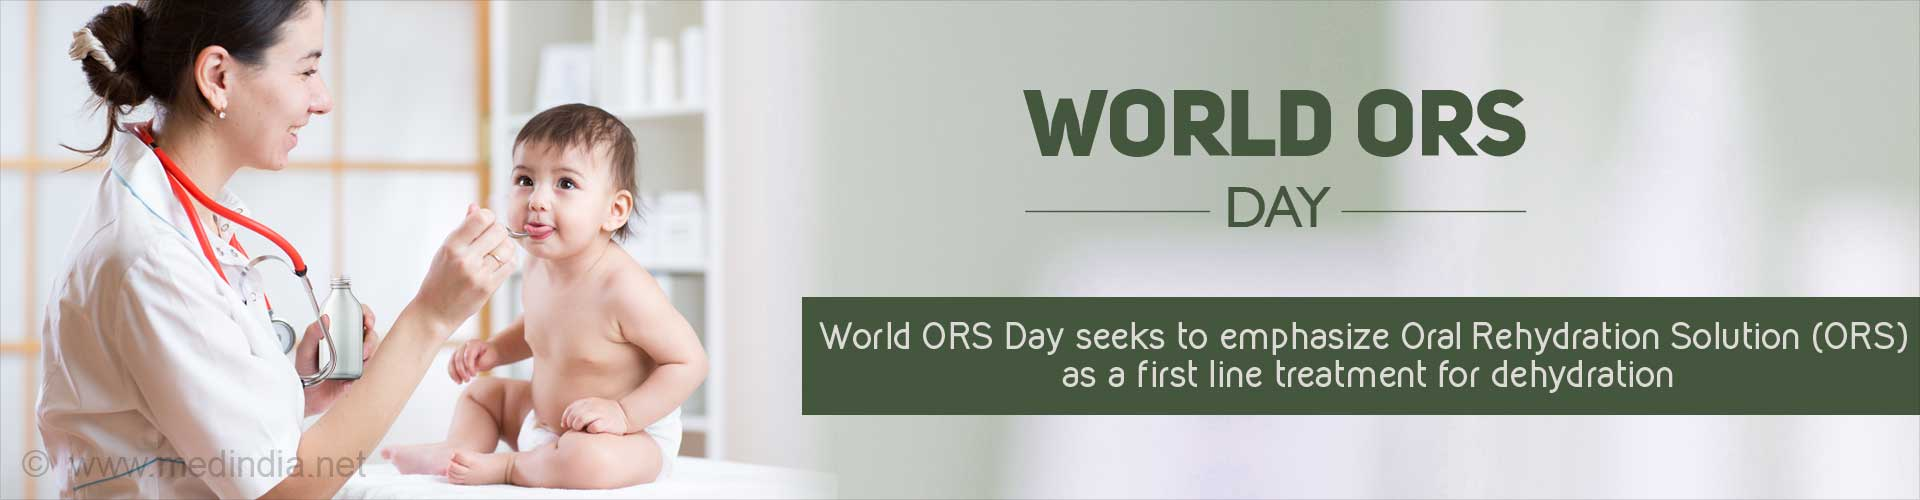 World ORS Day 2017